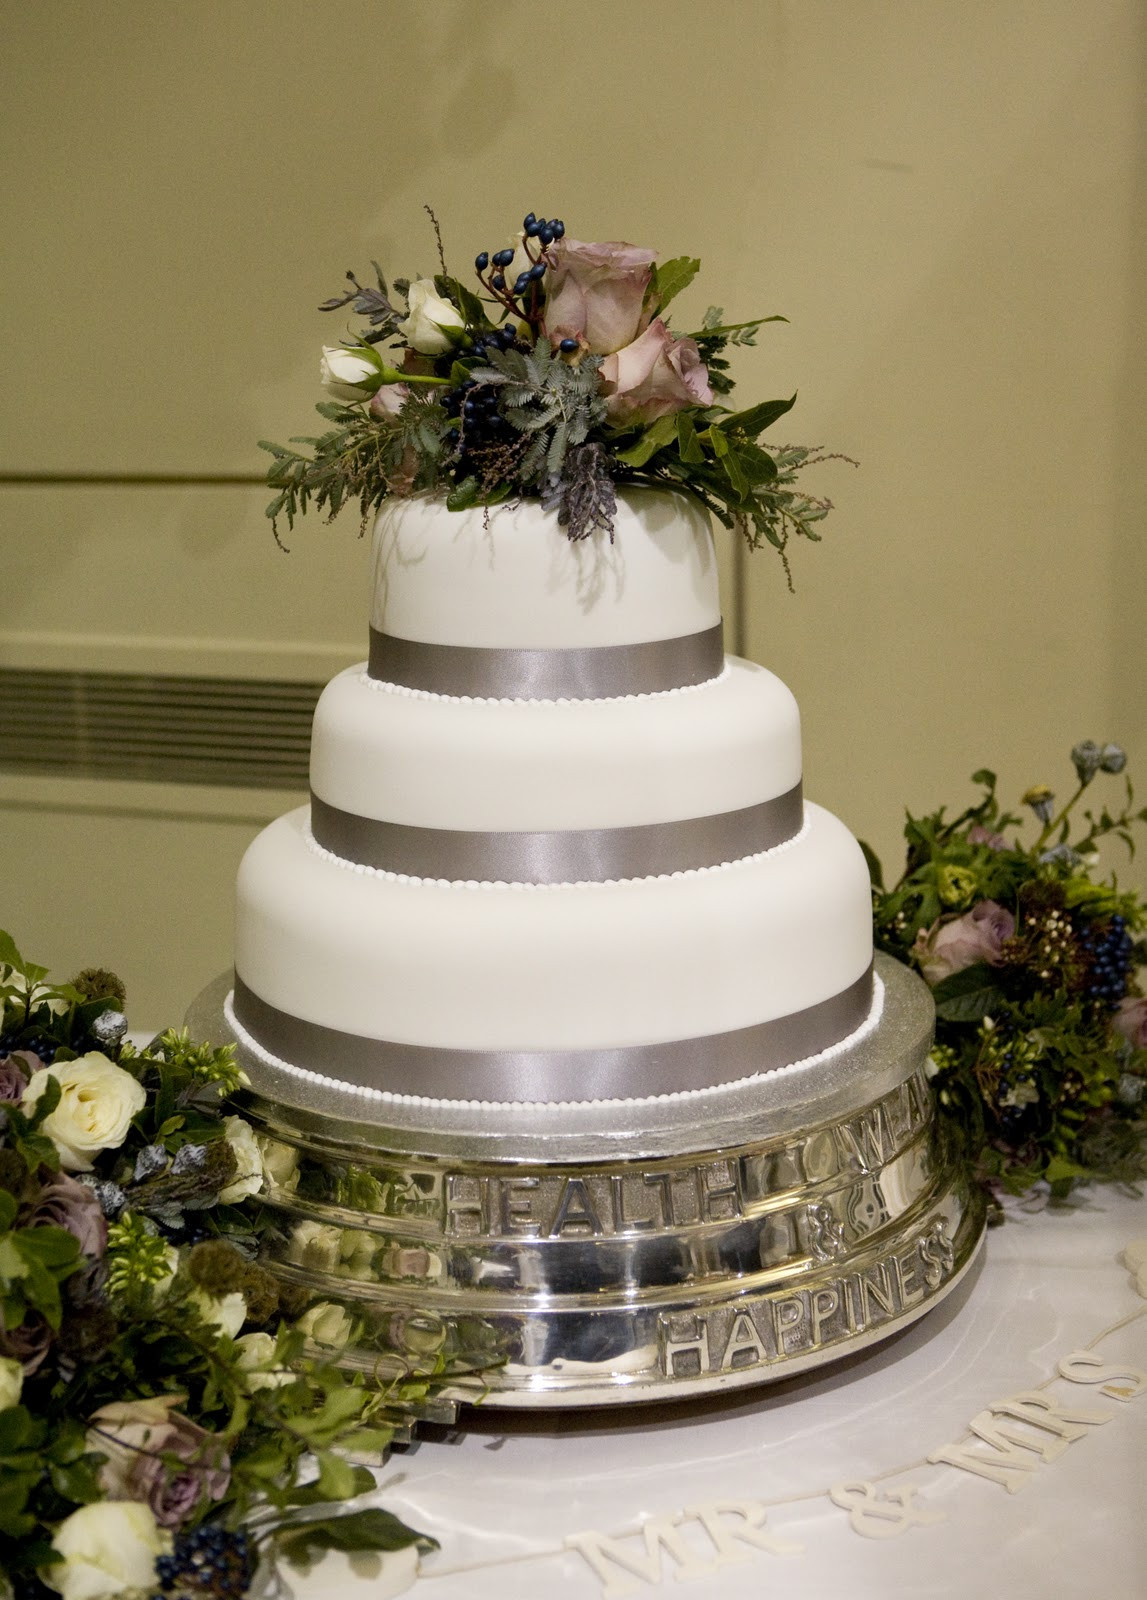 Cake Stands For Wedding Cakes  Vintage cake stands for weddings idea in 2017